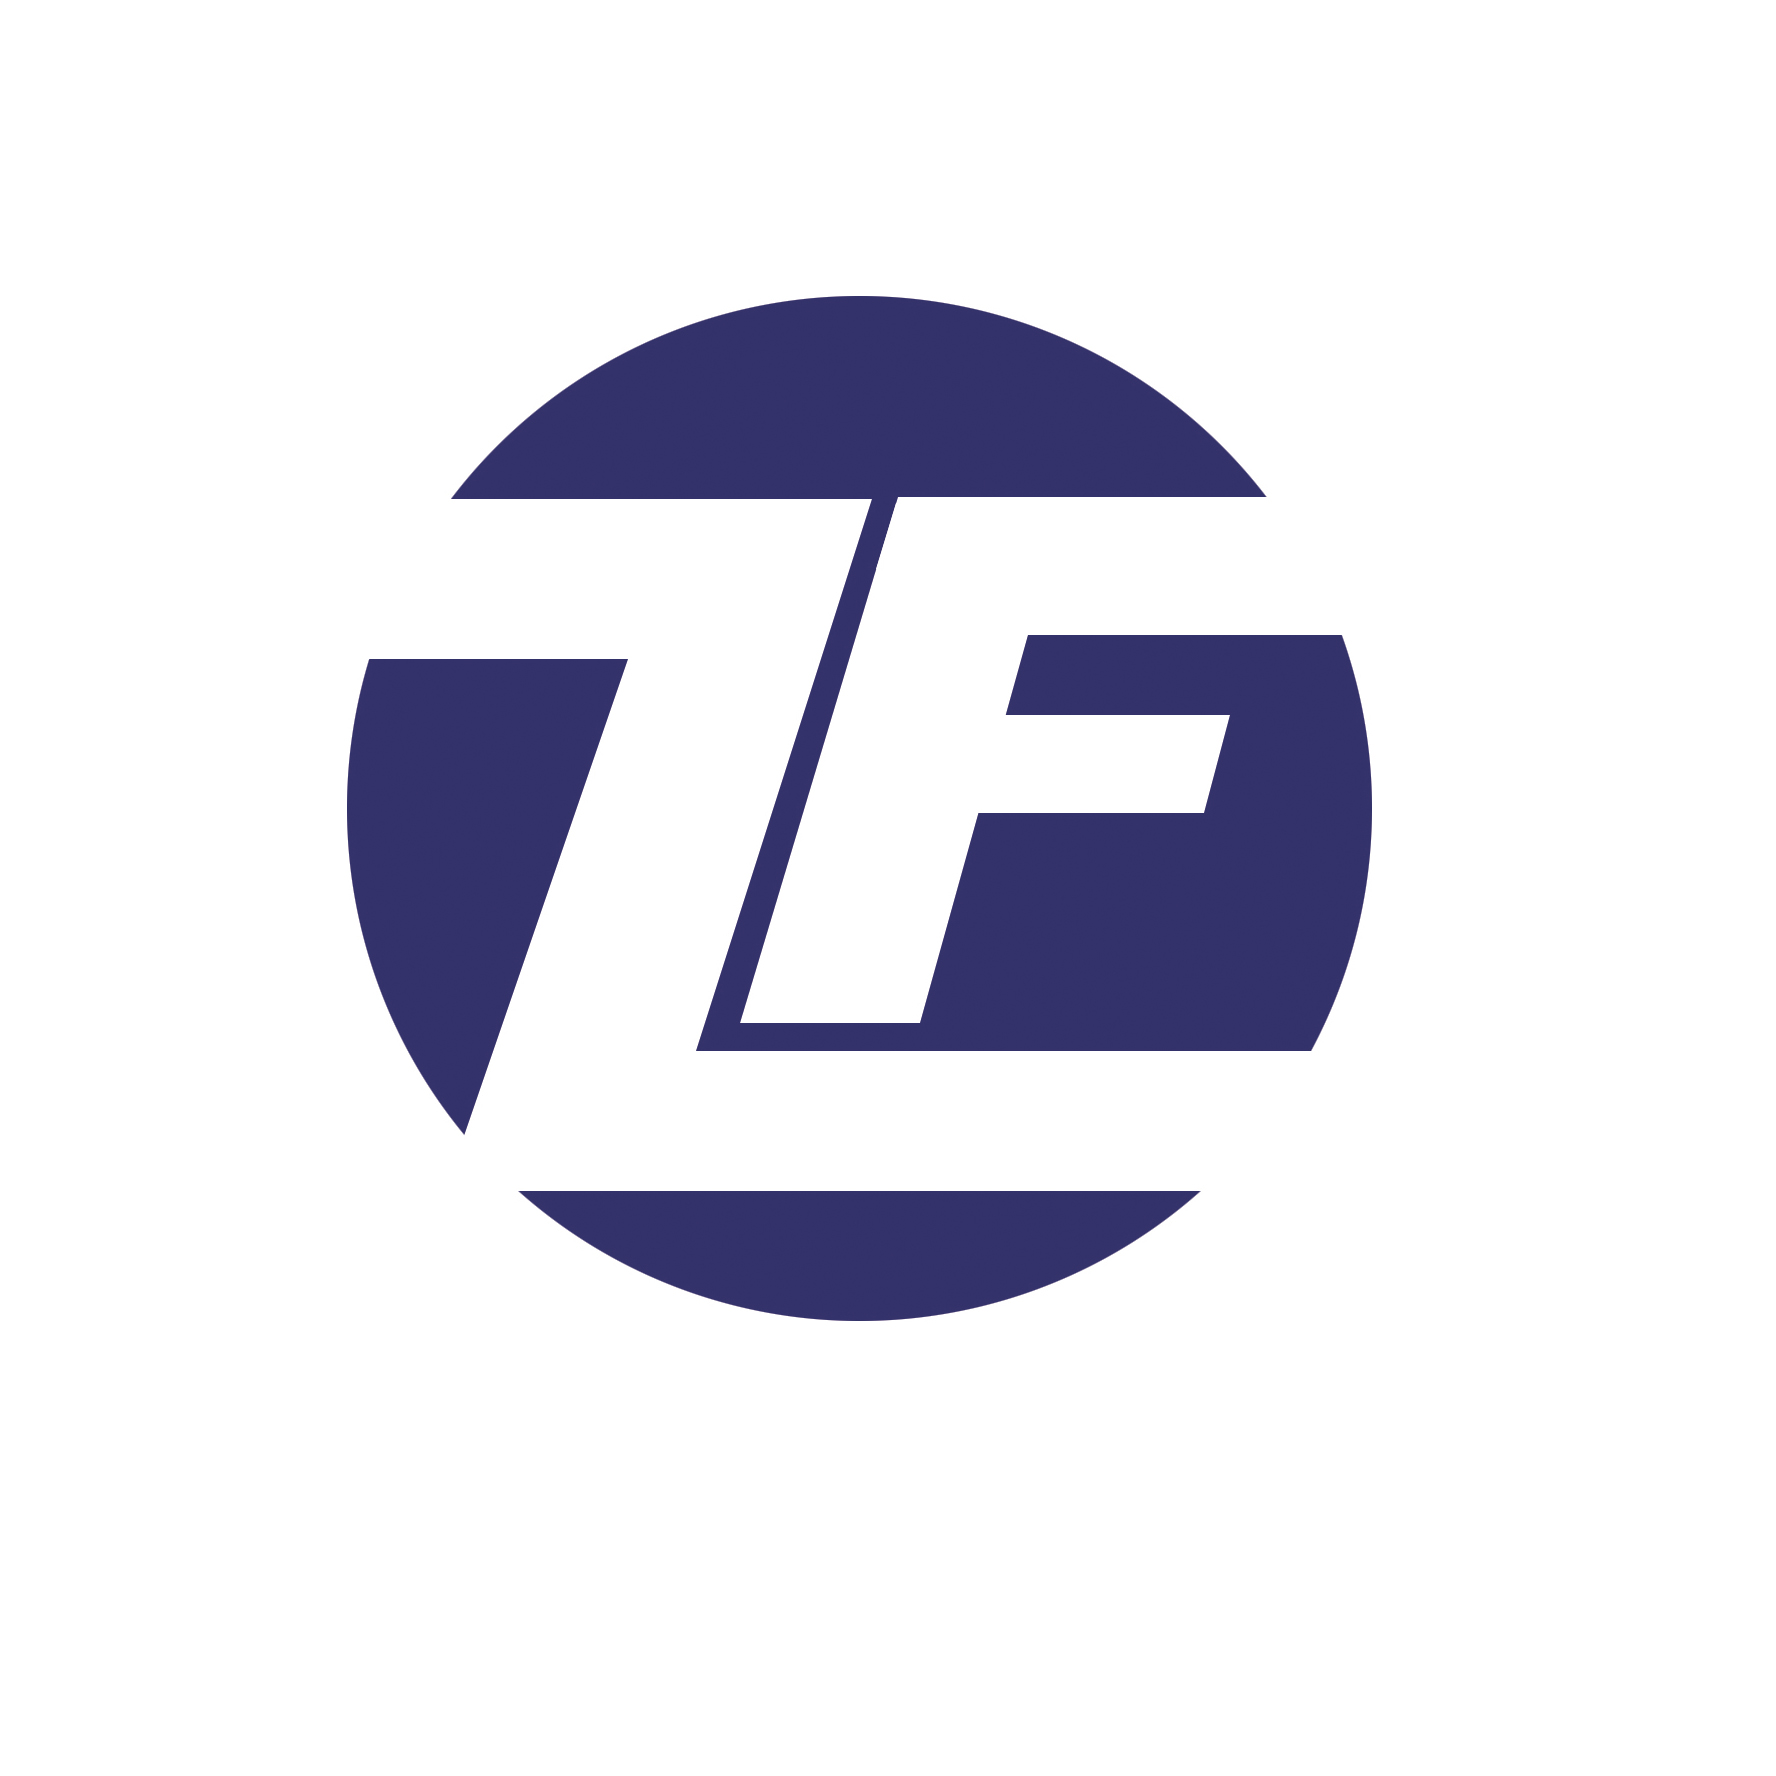 Dalian Zhaofeng Import and Export Co.,Ltd